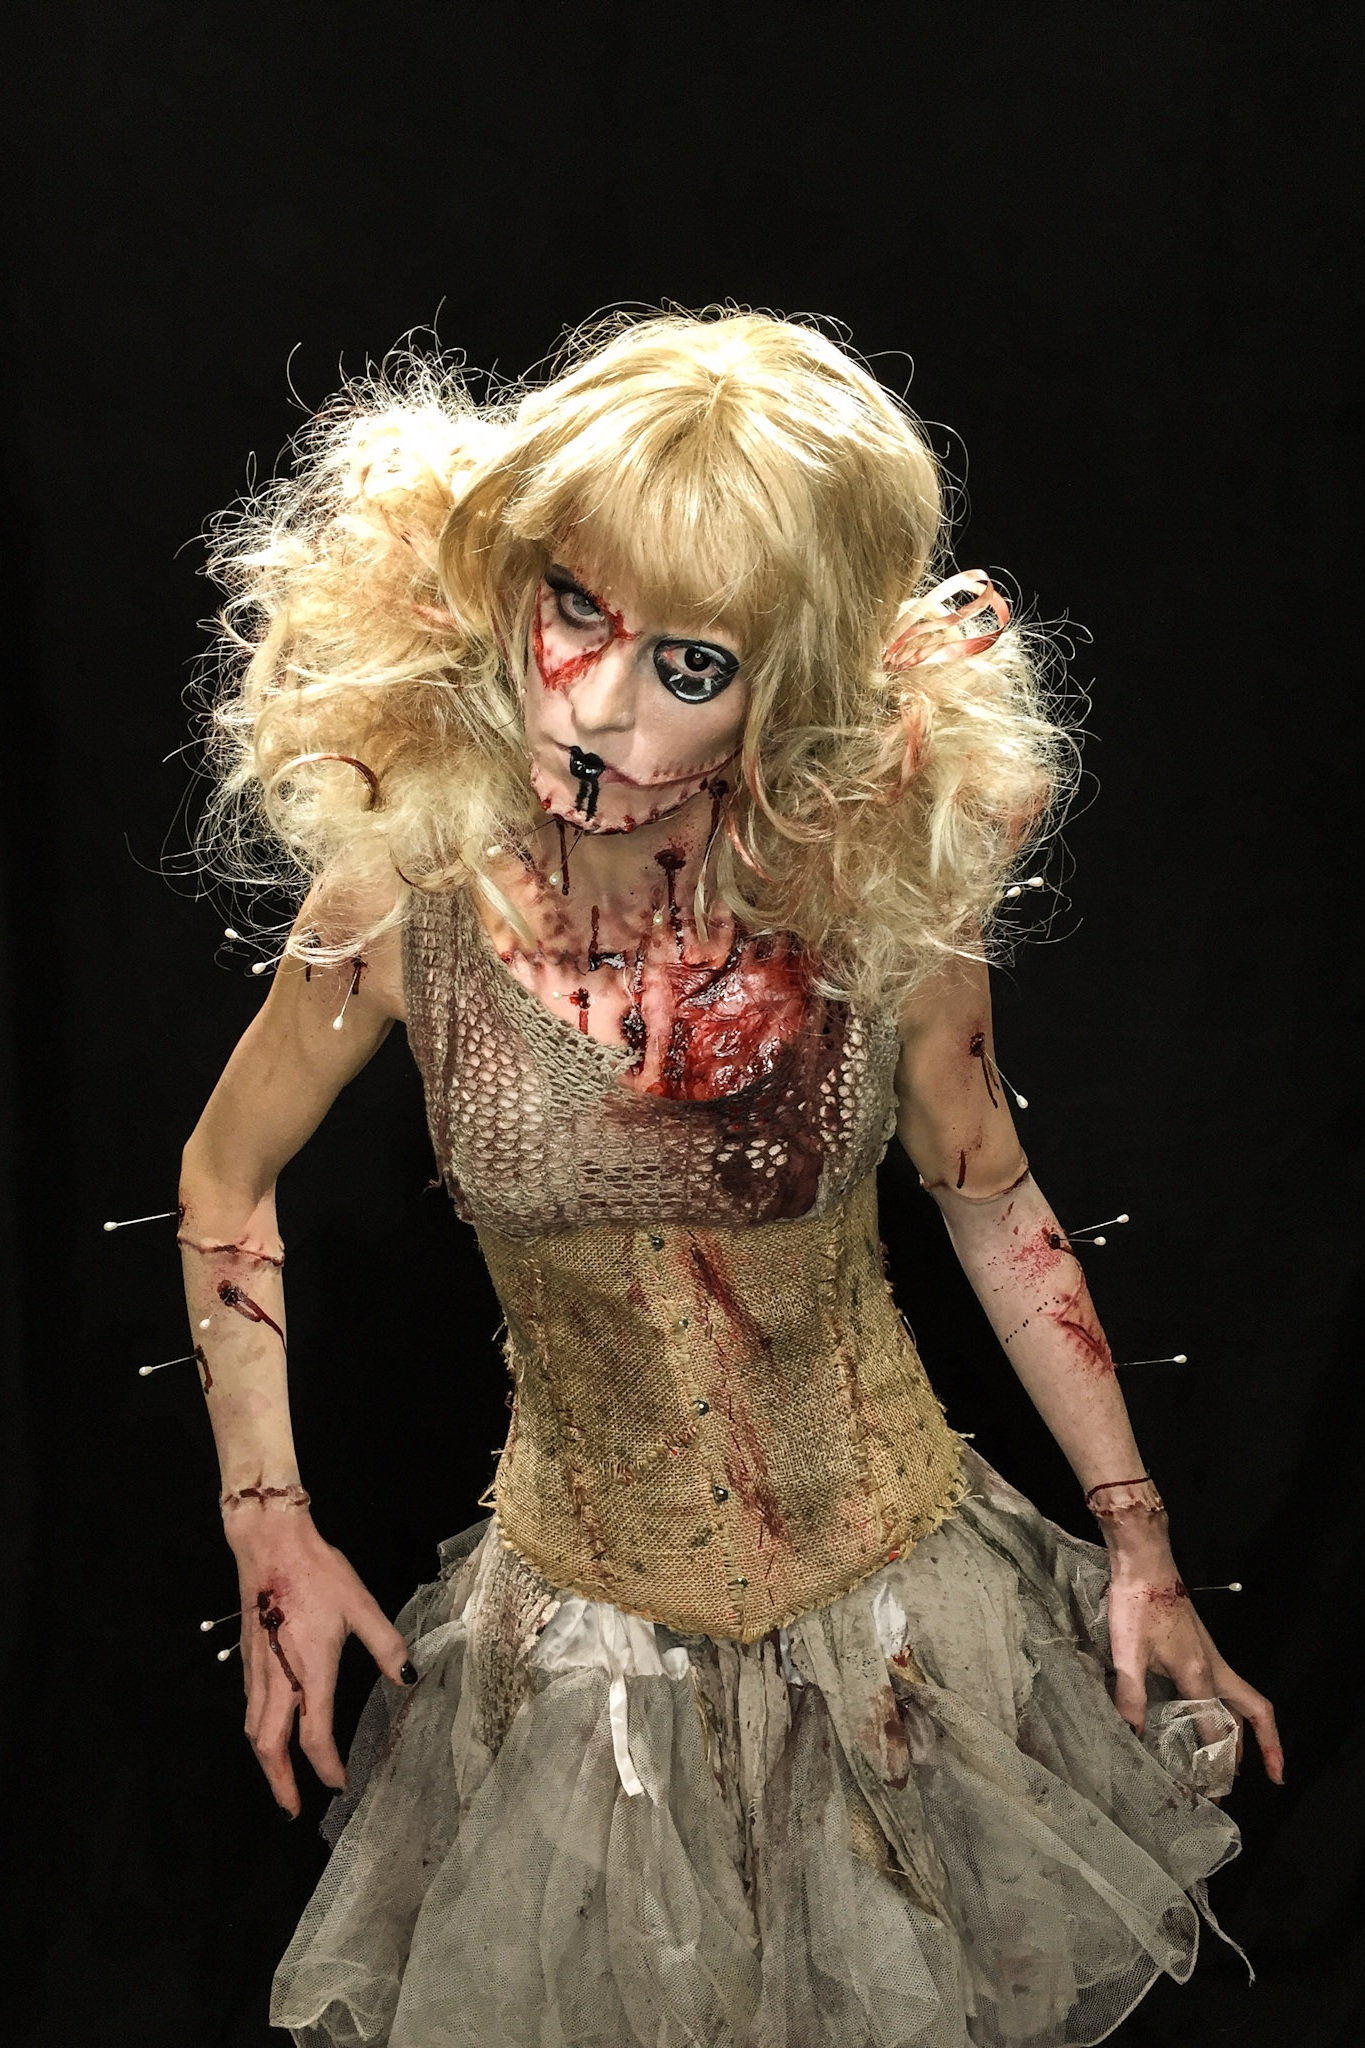 Monsterpalooza, 2016  Frends Beauty Supply Demo  Makeup Artist: Chloe Sens  Dress purchased and distressed,. Corset base purchased, burlap added on top, and distressed